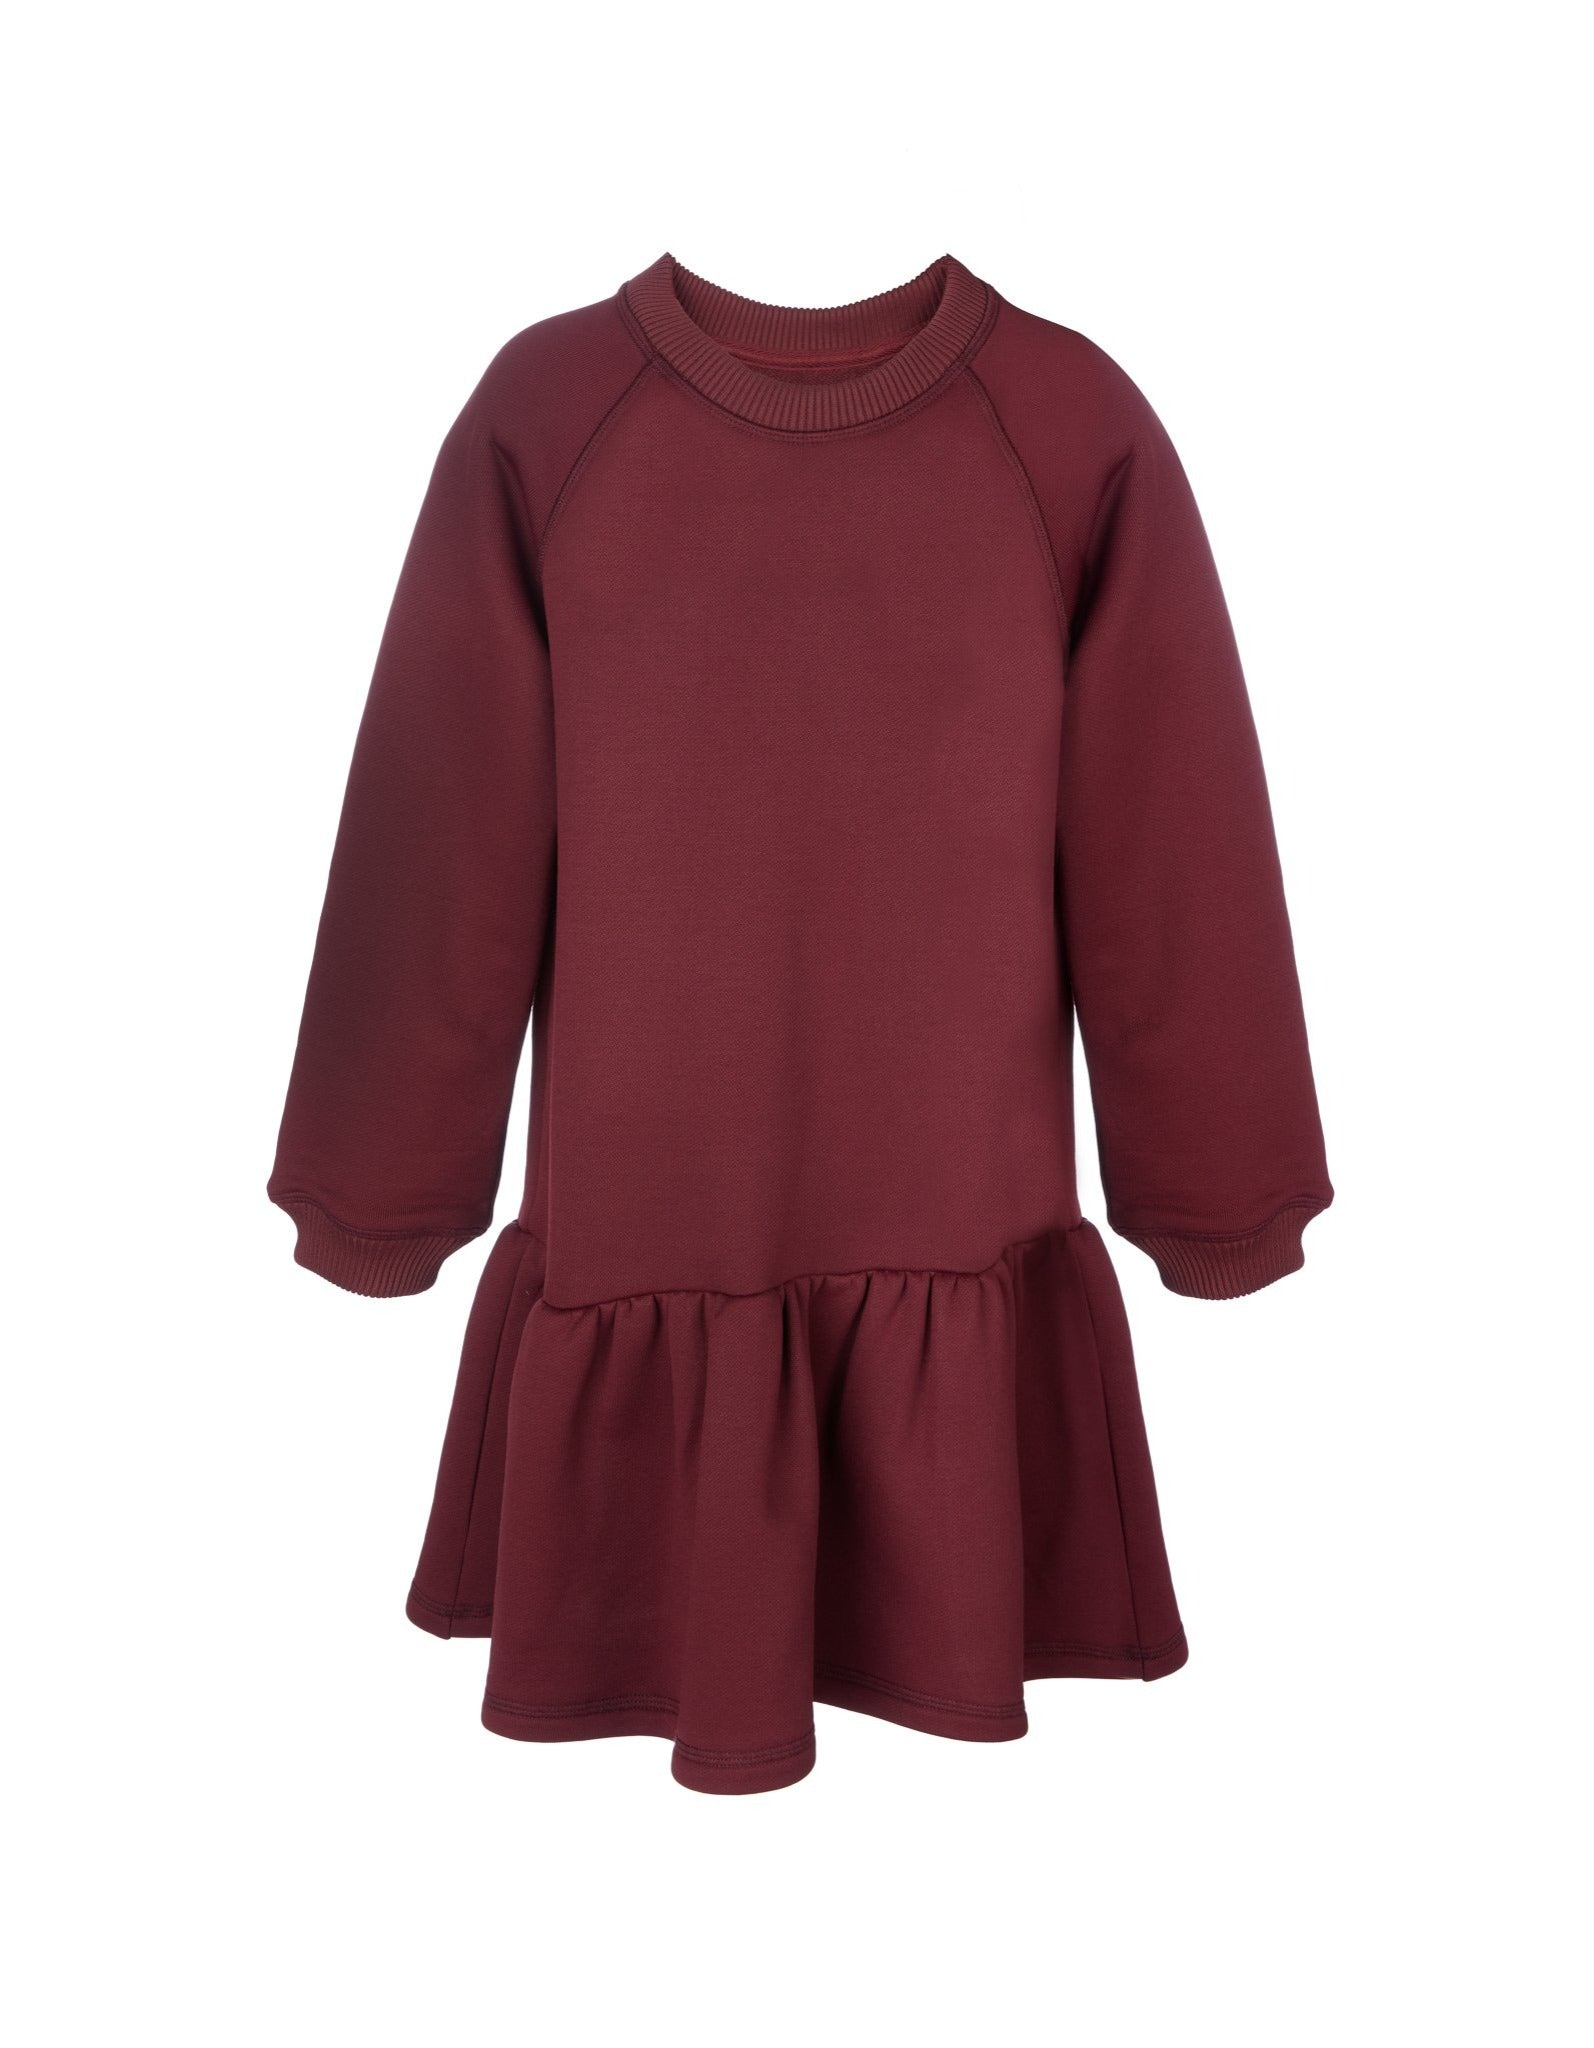 FLEECE CREW NECK GATHERED DRESS IN BURGUNDY